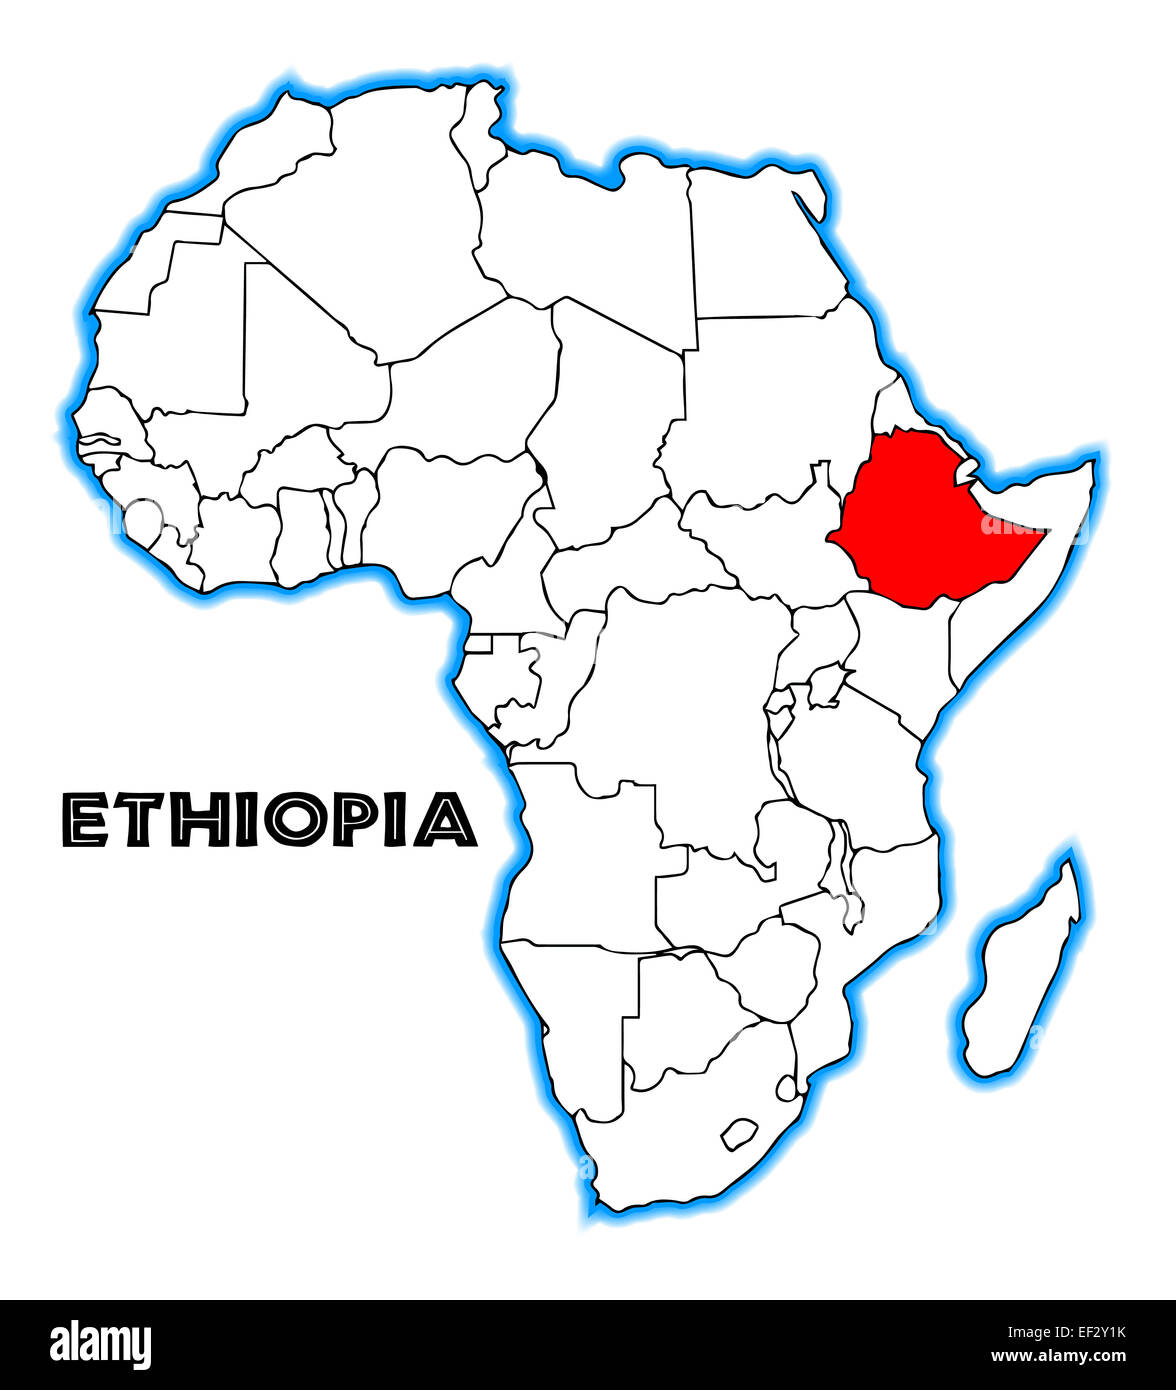 Ethiopia Location On Africa Map.Ethiopia On Africa Map Jackenjuul